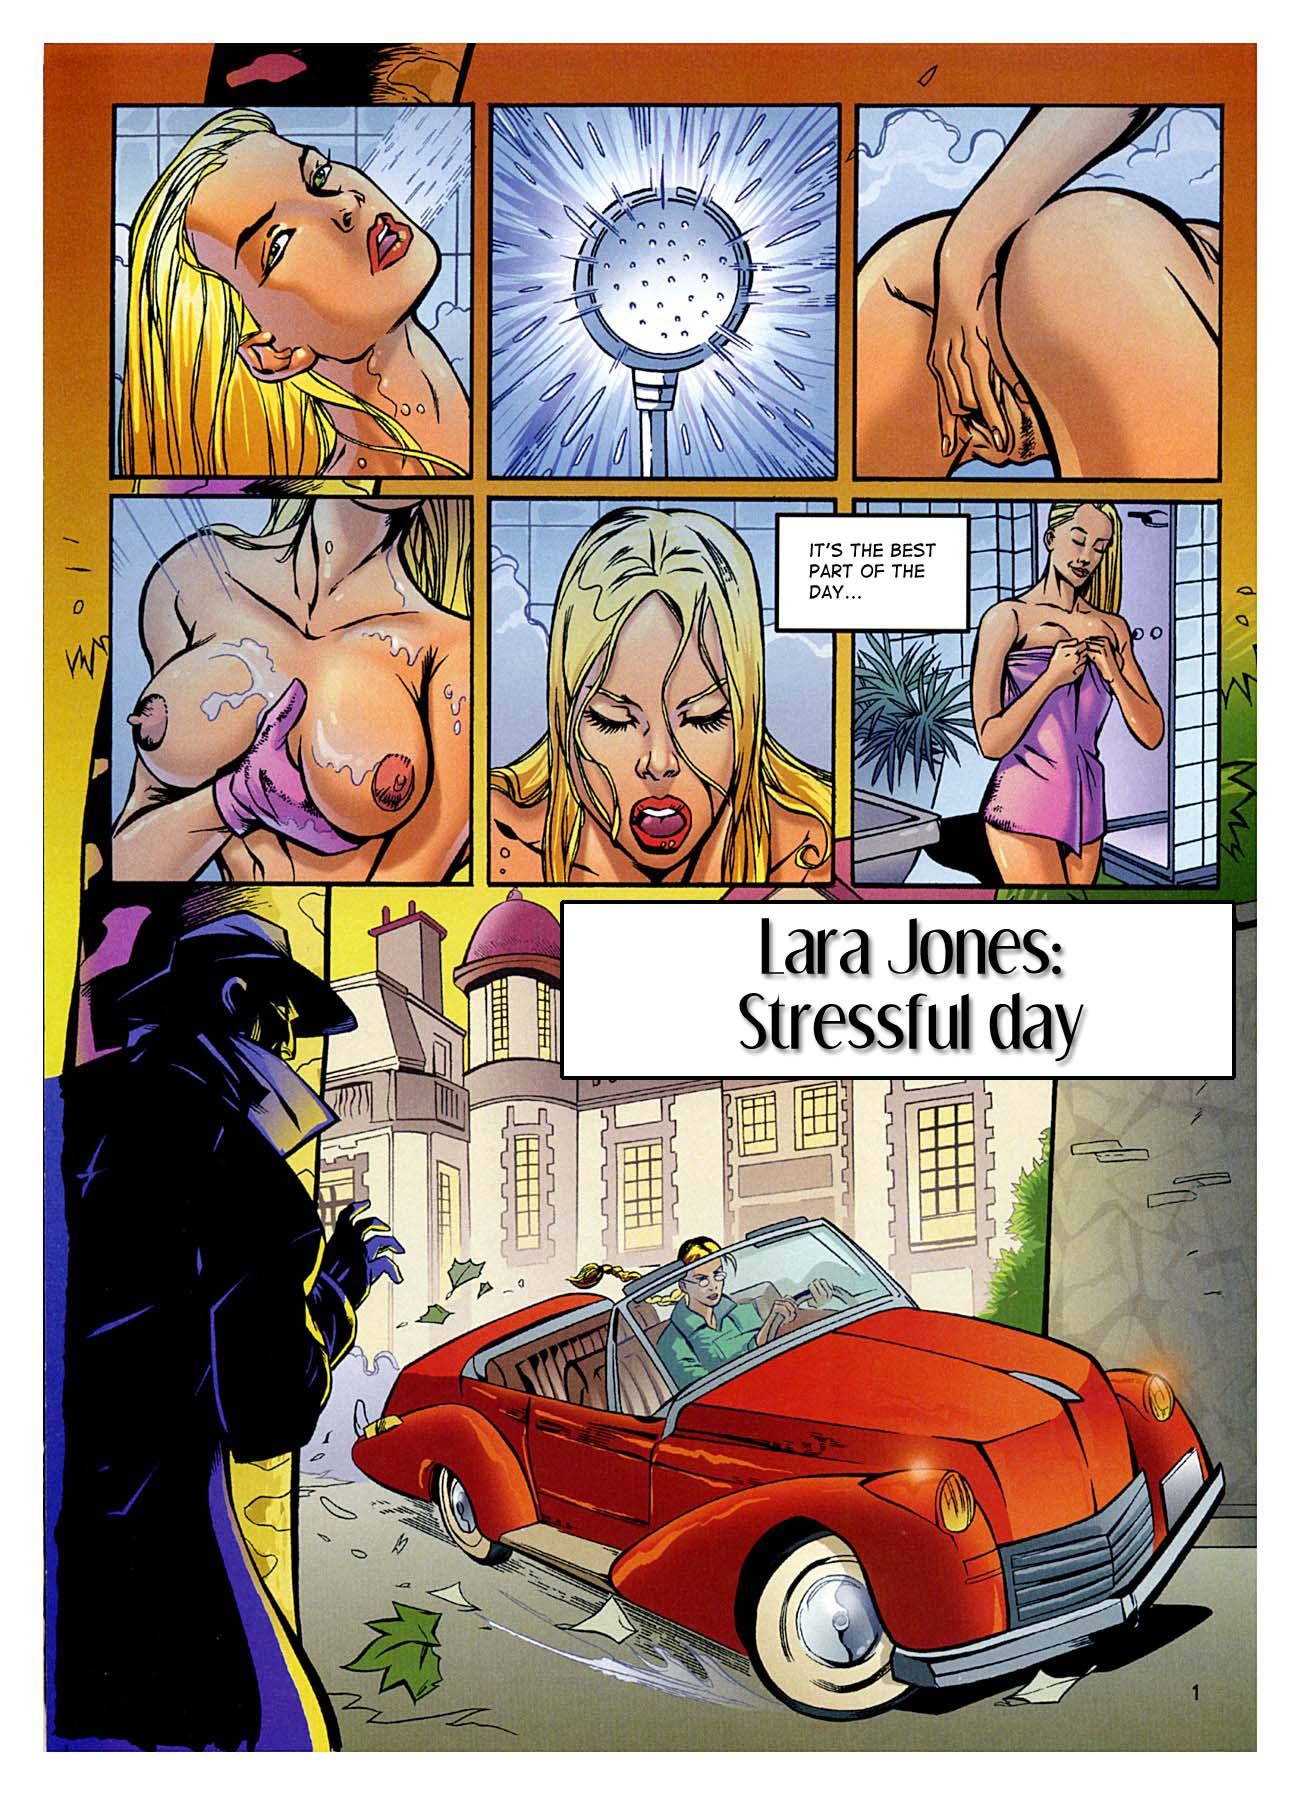 Stressful Day- Lara Jones porn comics 8 muses